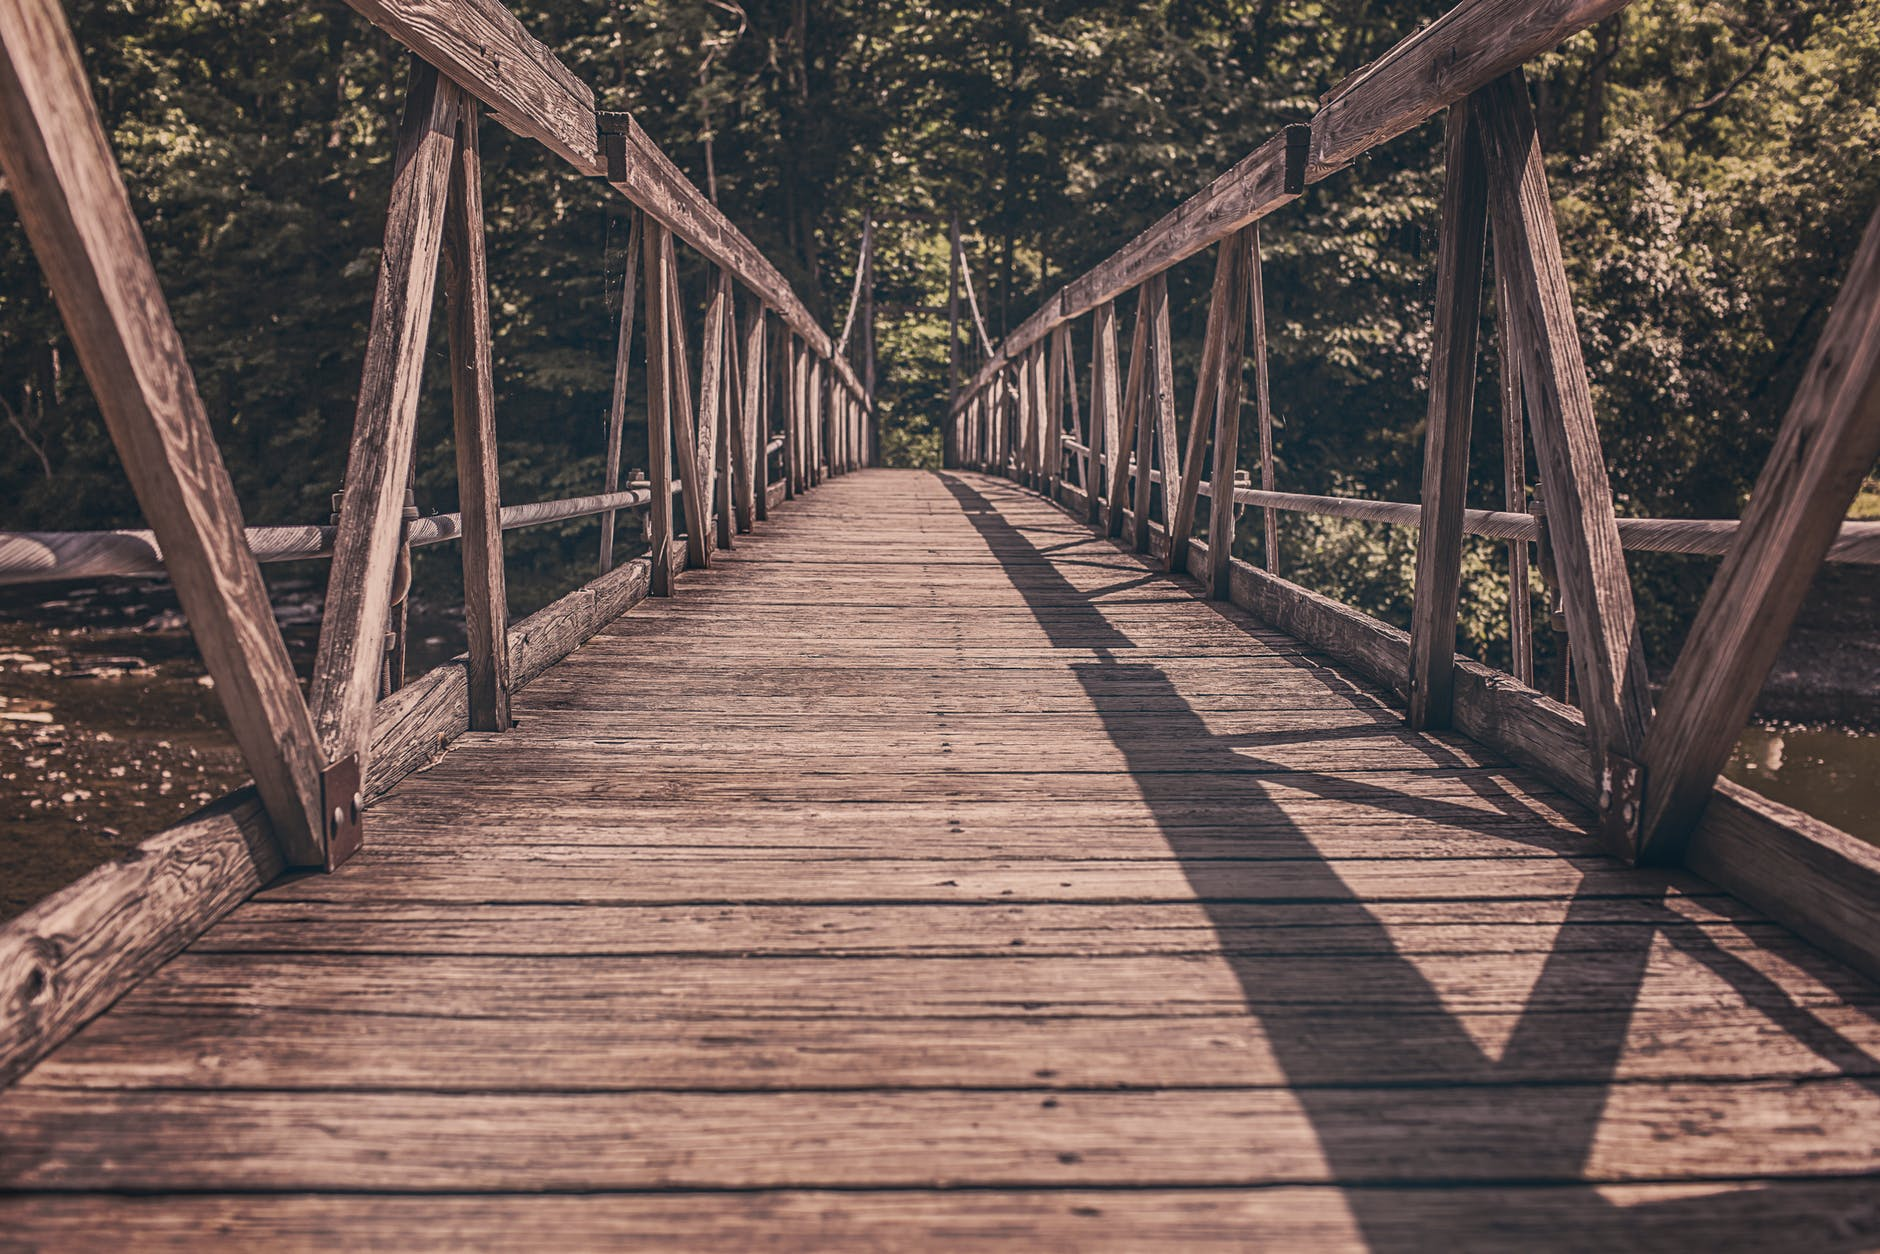 Bridging the Gap When You Have Different Perspectives